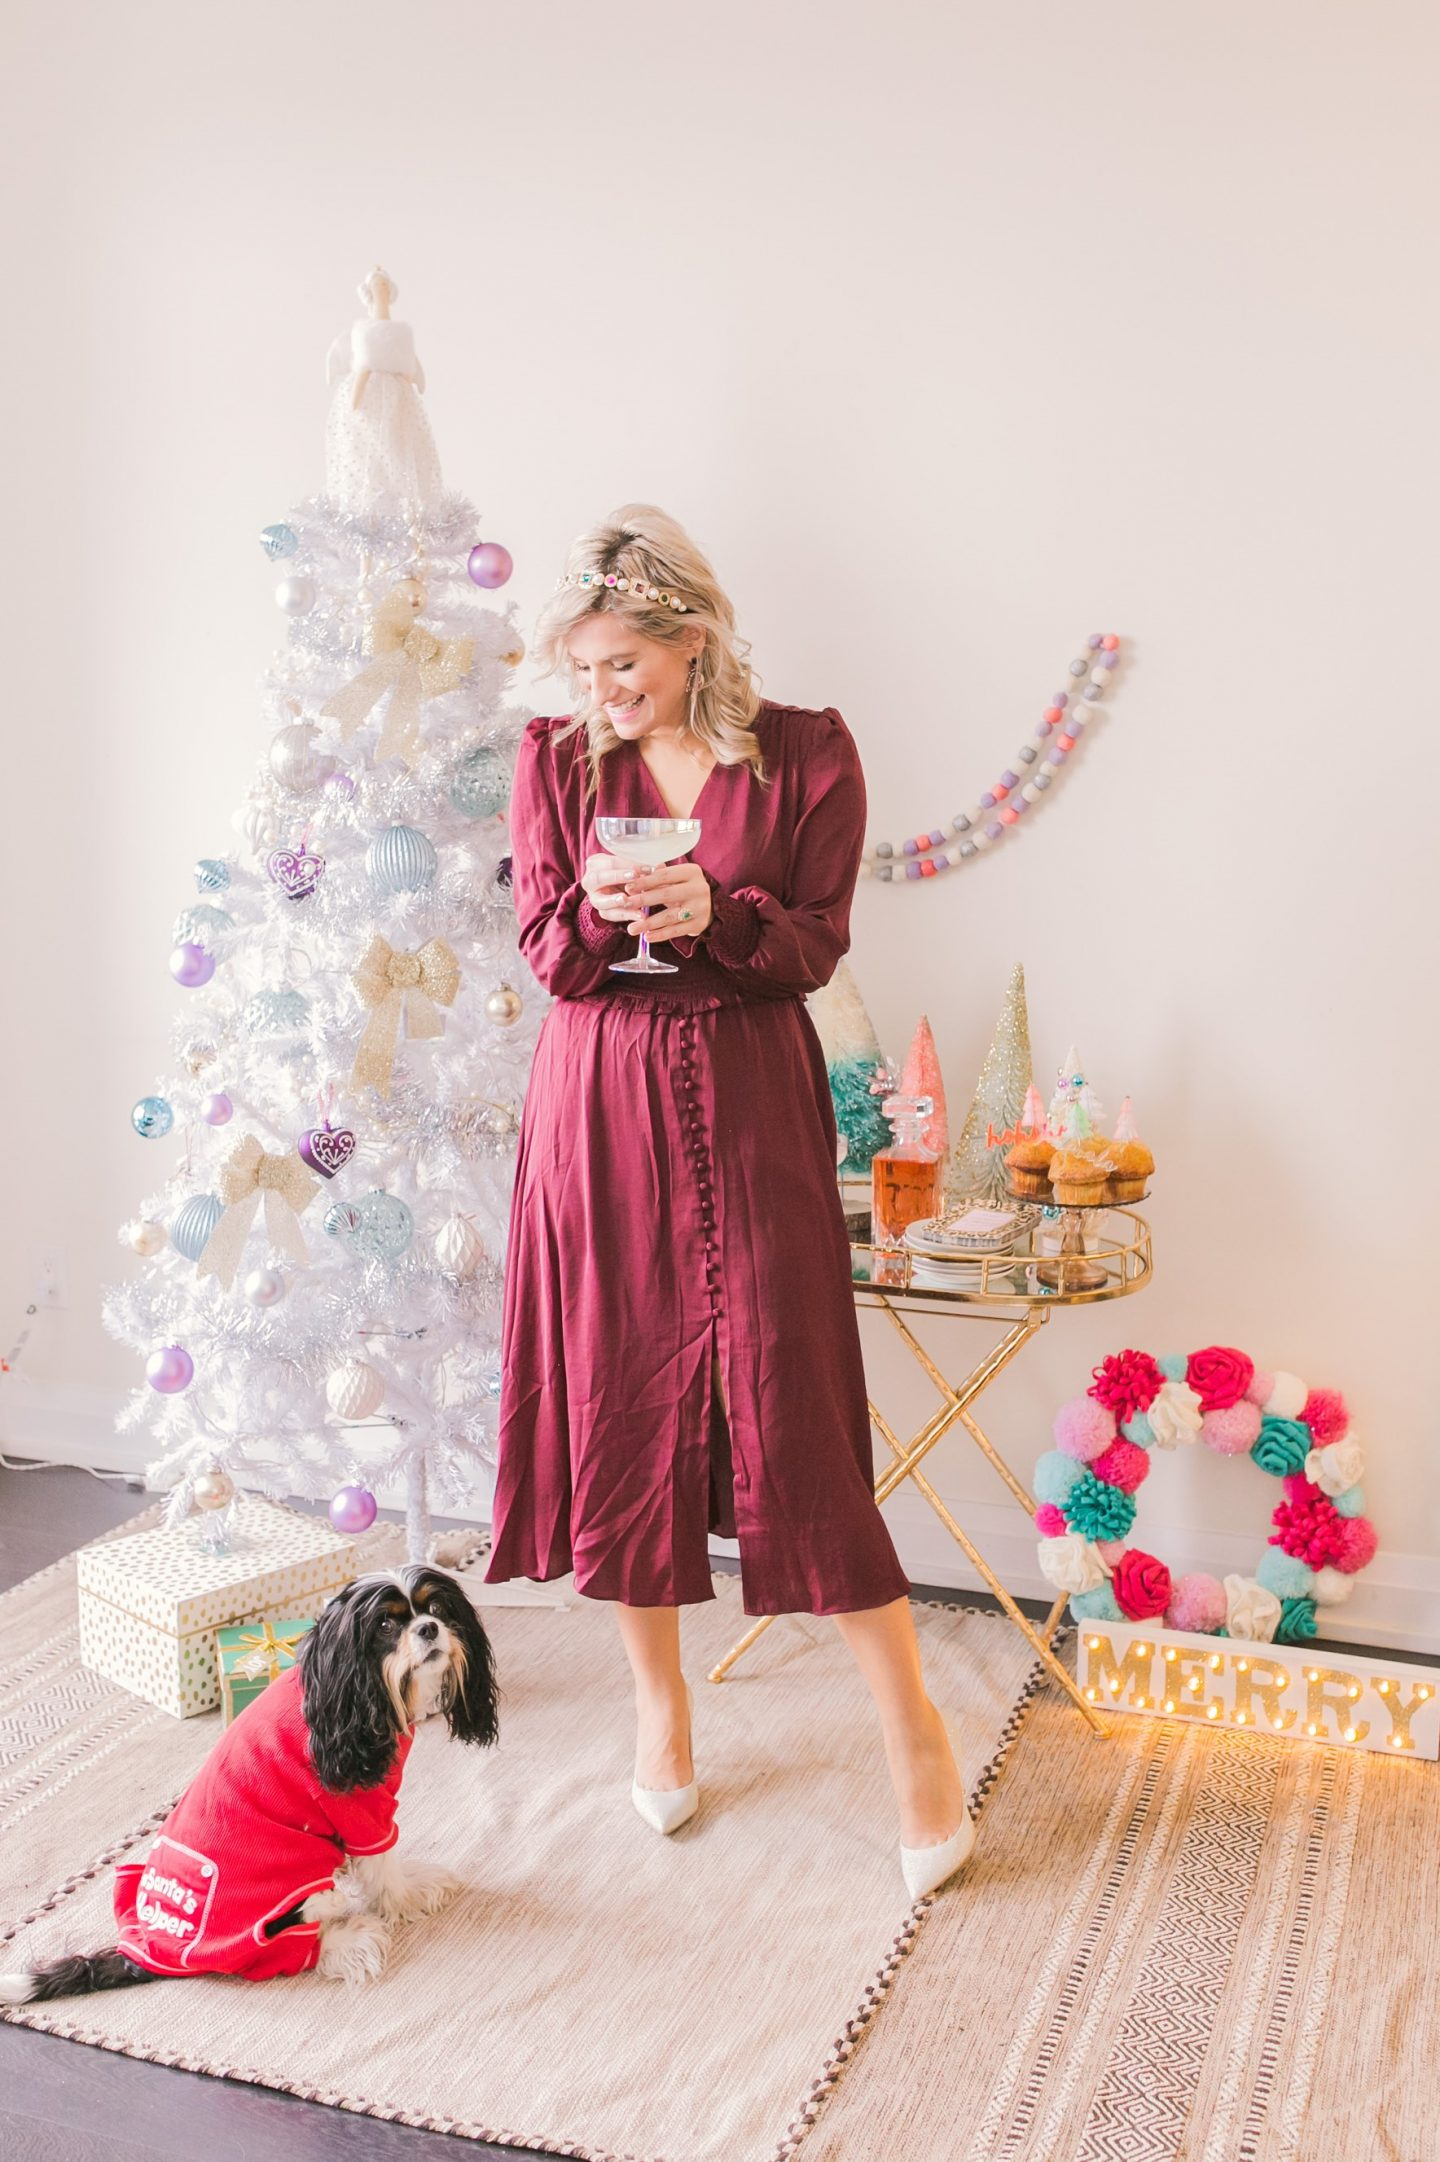 5 Easy Tips for Styling Your Holiday Bar Cart - Bijuleni